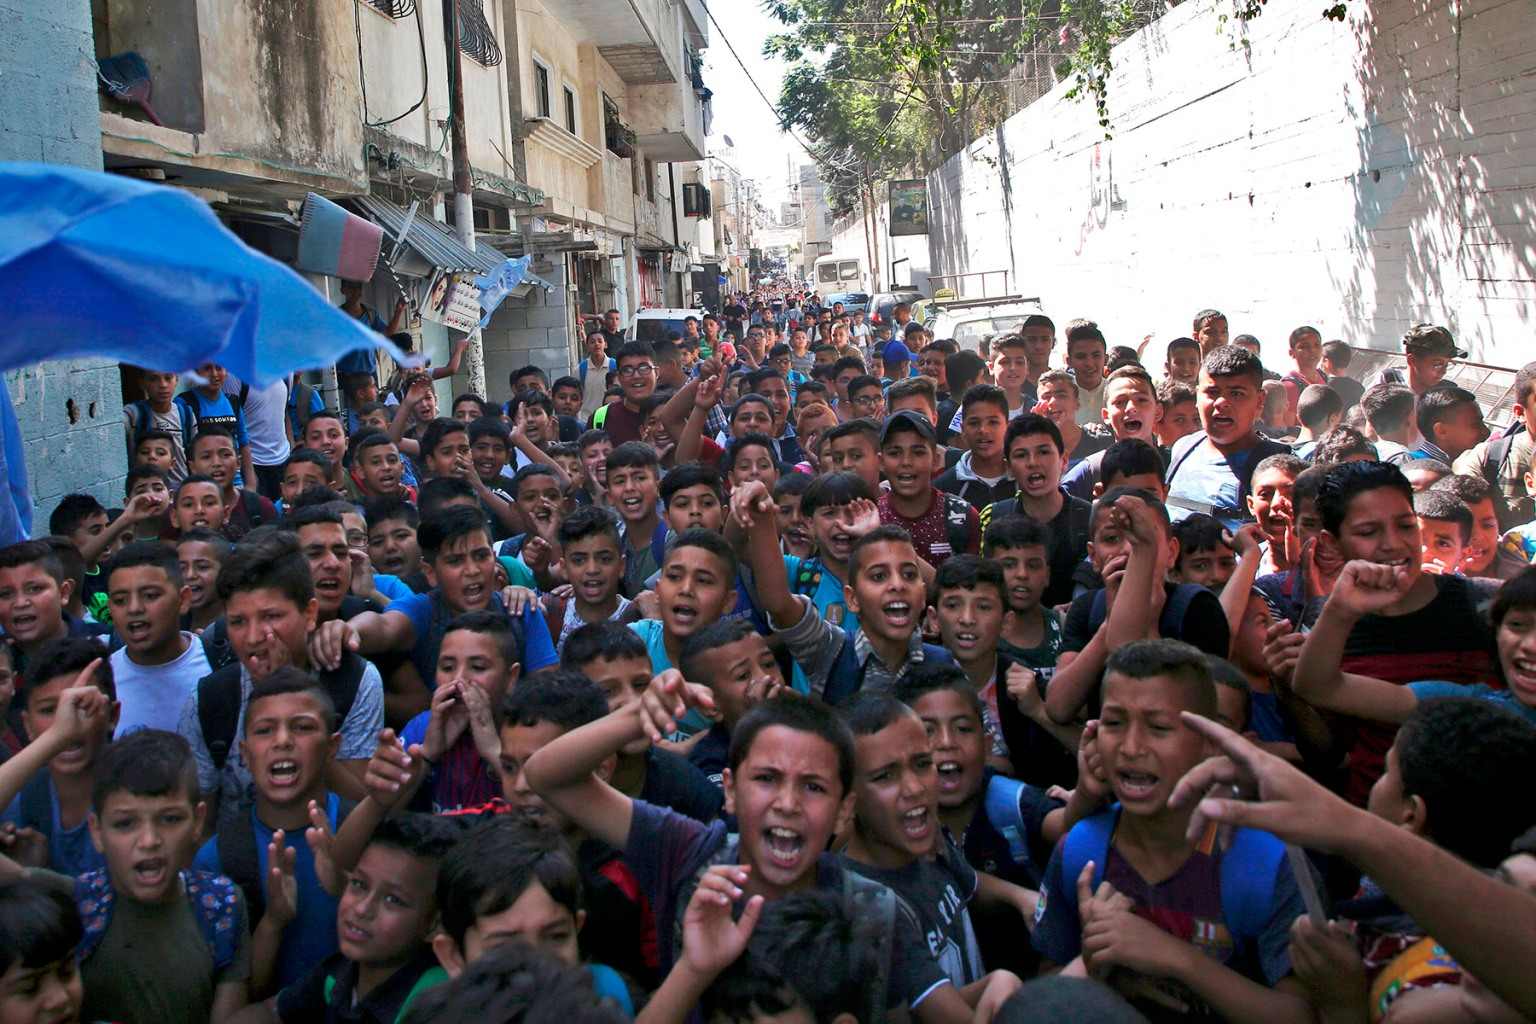 Palestinian students protest in front of a school administered by the United Nations Relief and Works Agency and financed by U.S. aid, in the Balata refugee camp near Nablus in the occupied West Bank, on Sept. 25. Earlier this year, the United States, by far the biggest contributor to UNRWA, announced it was halting funding to the agency. JAAFAR ASHTIYEH/AFP/Getty Images)